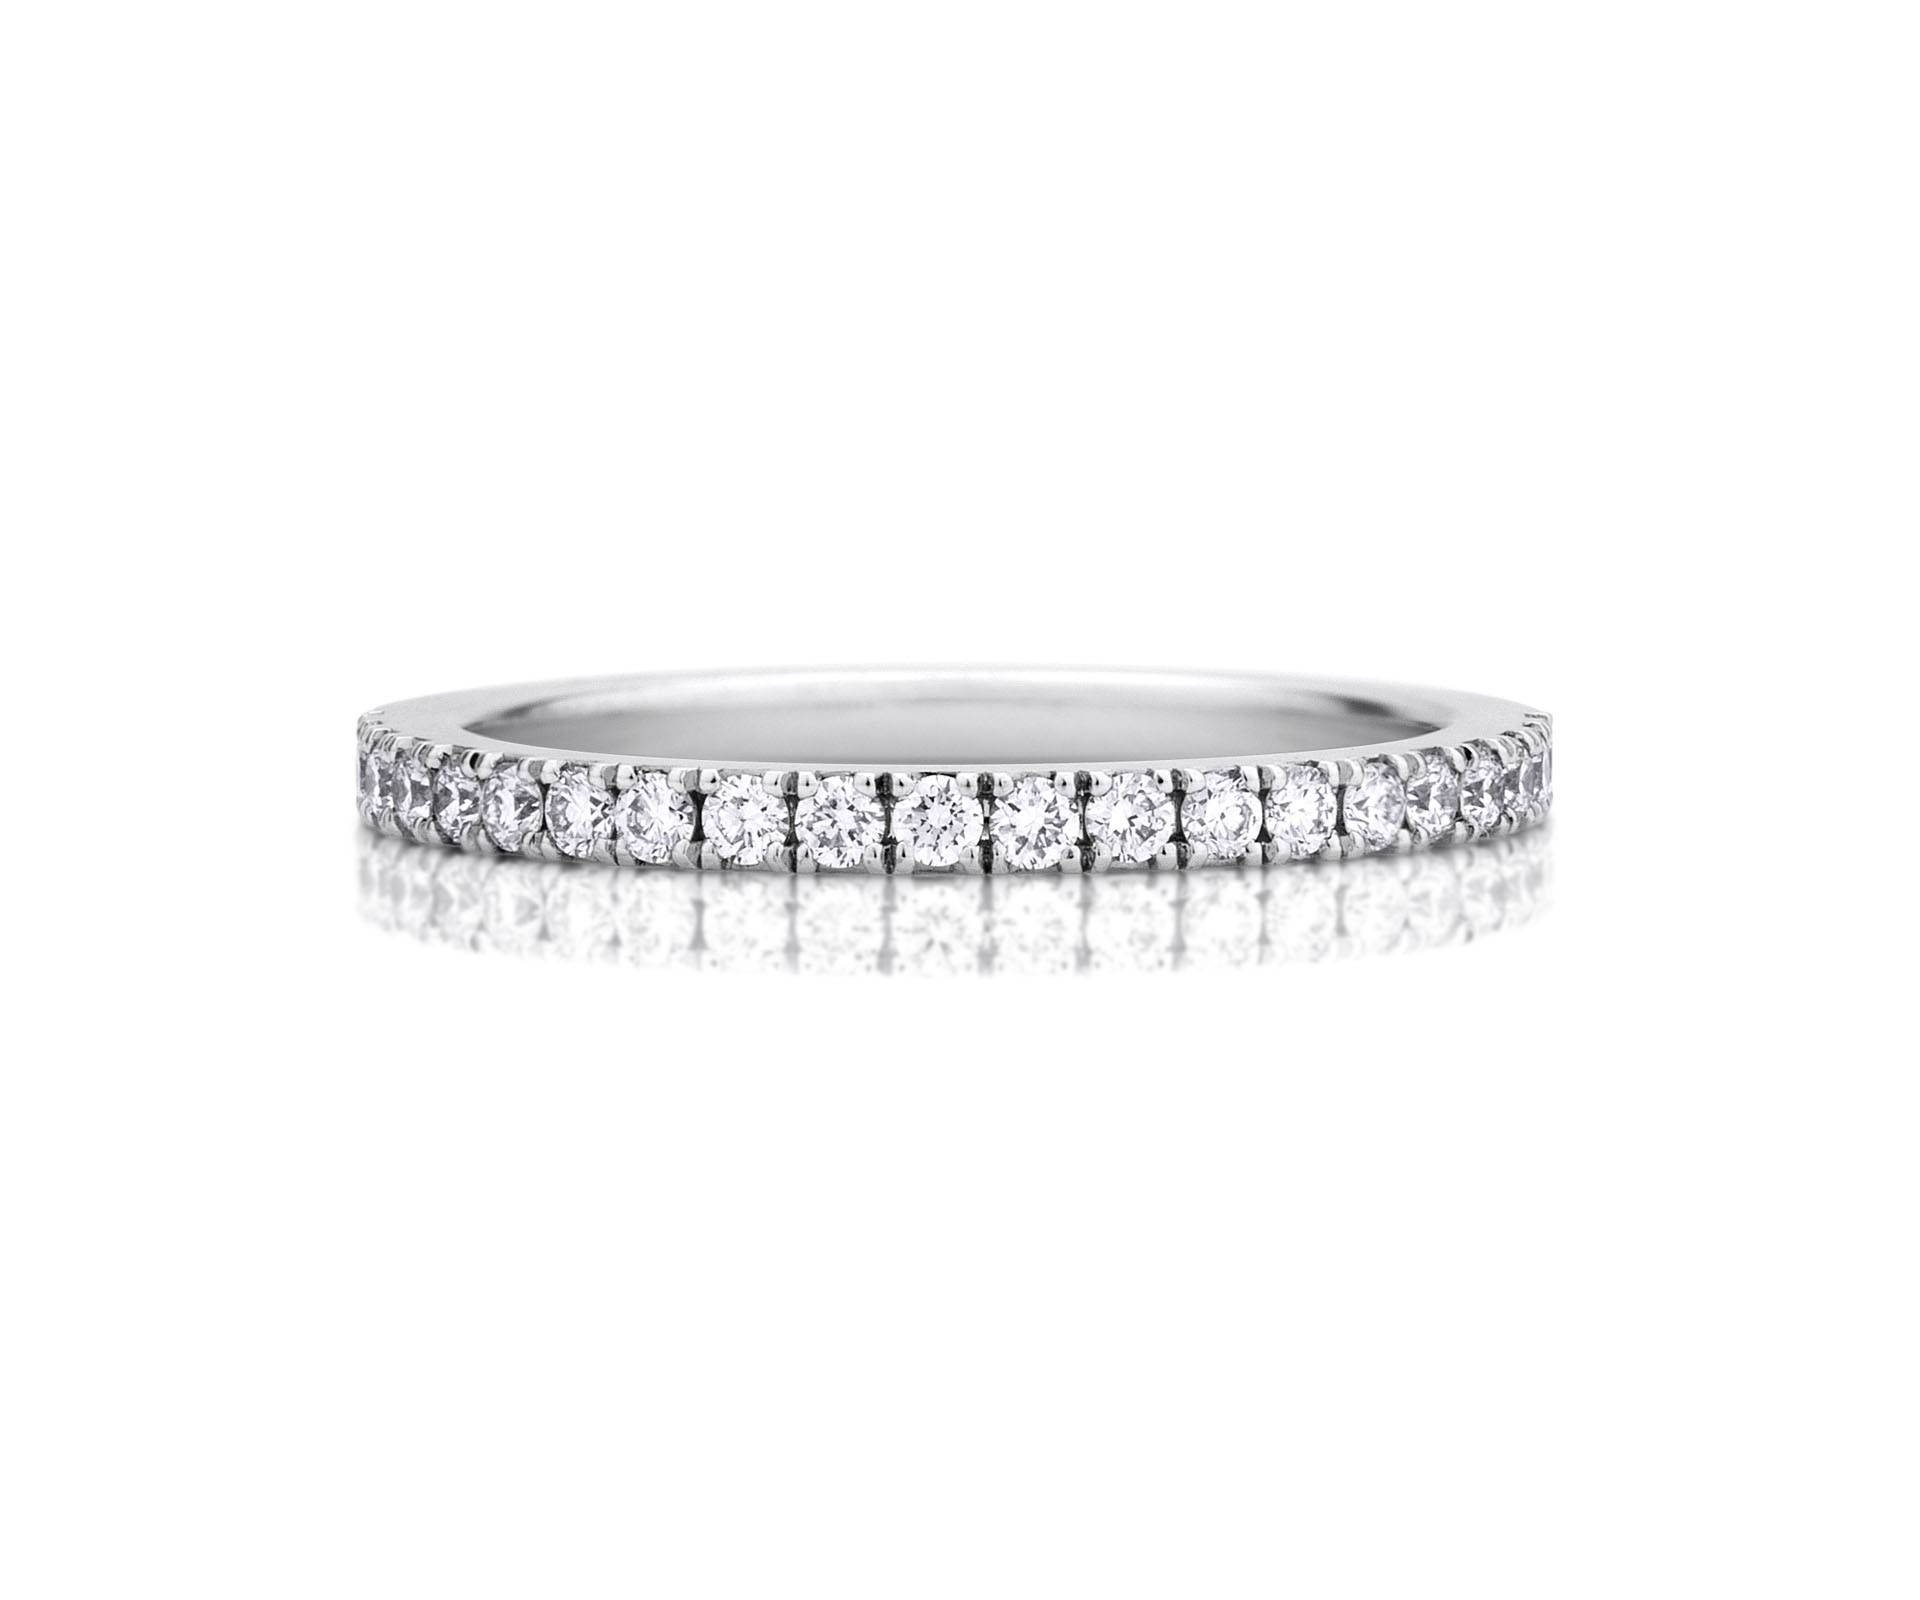 Diamond Wedding Rings & Bands | De Beers Within Diamond Band Wedding Rings (View 12 of 15)